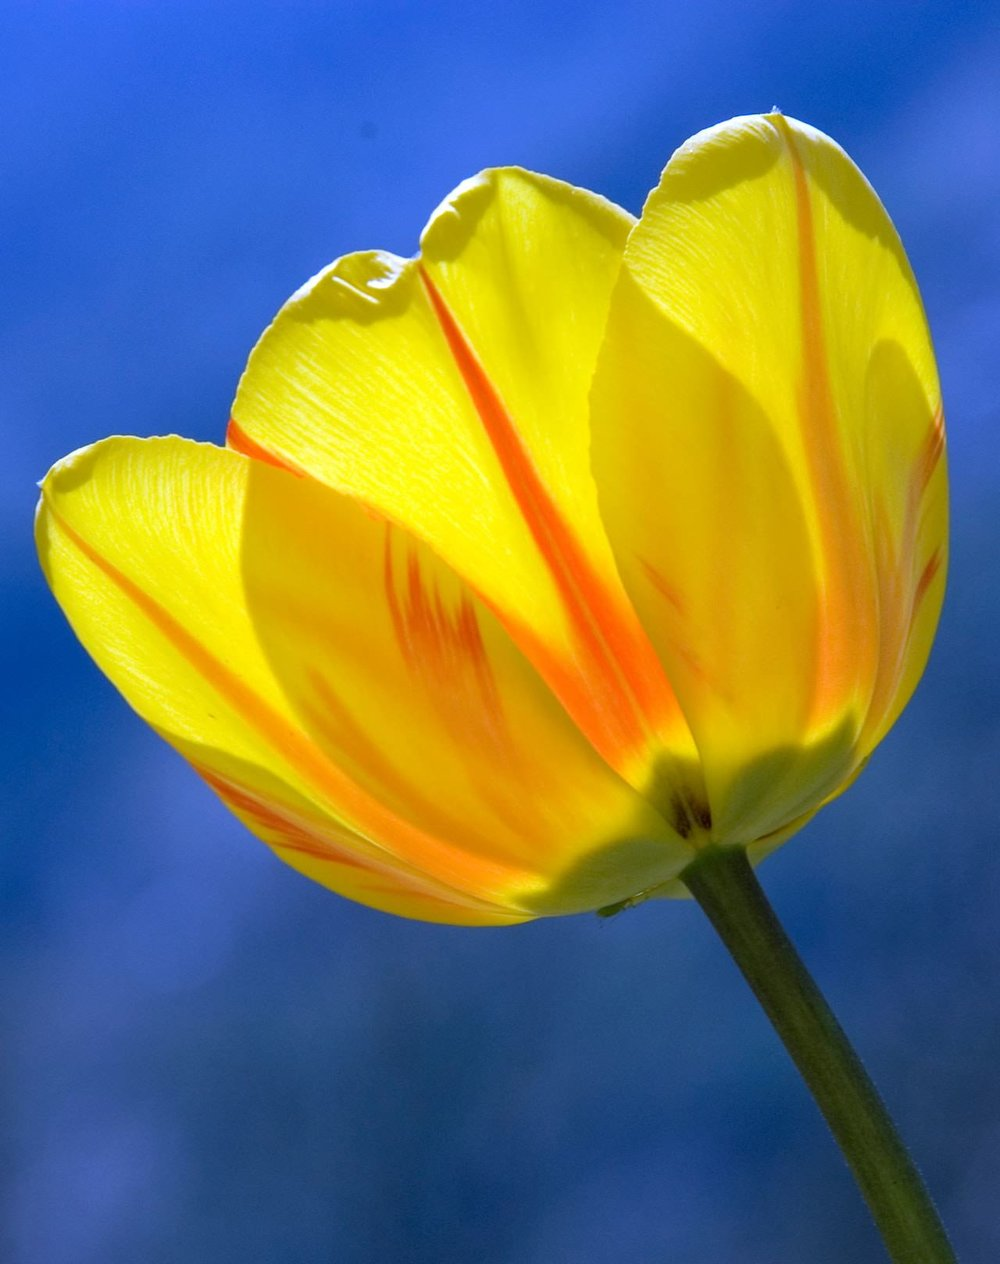 tulip-yellow-spring-flowers-60115.jpeg